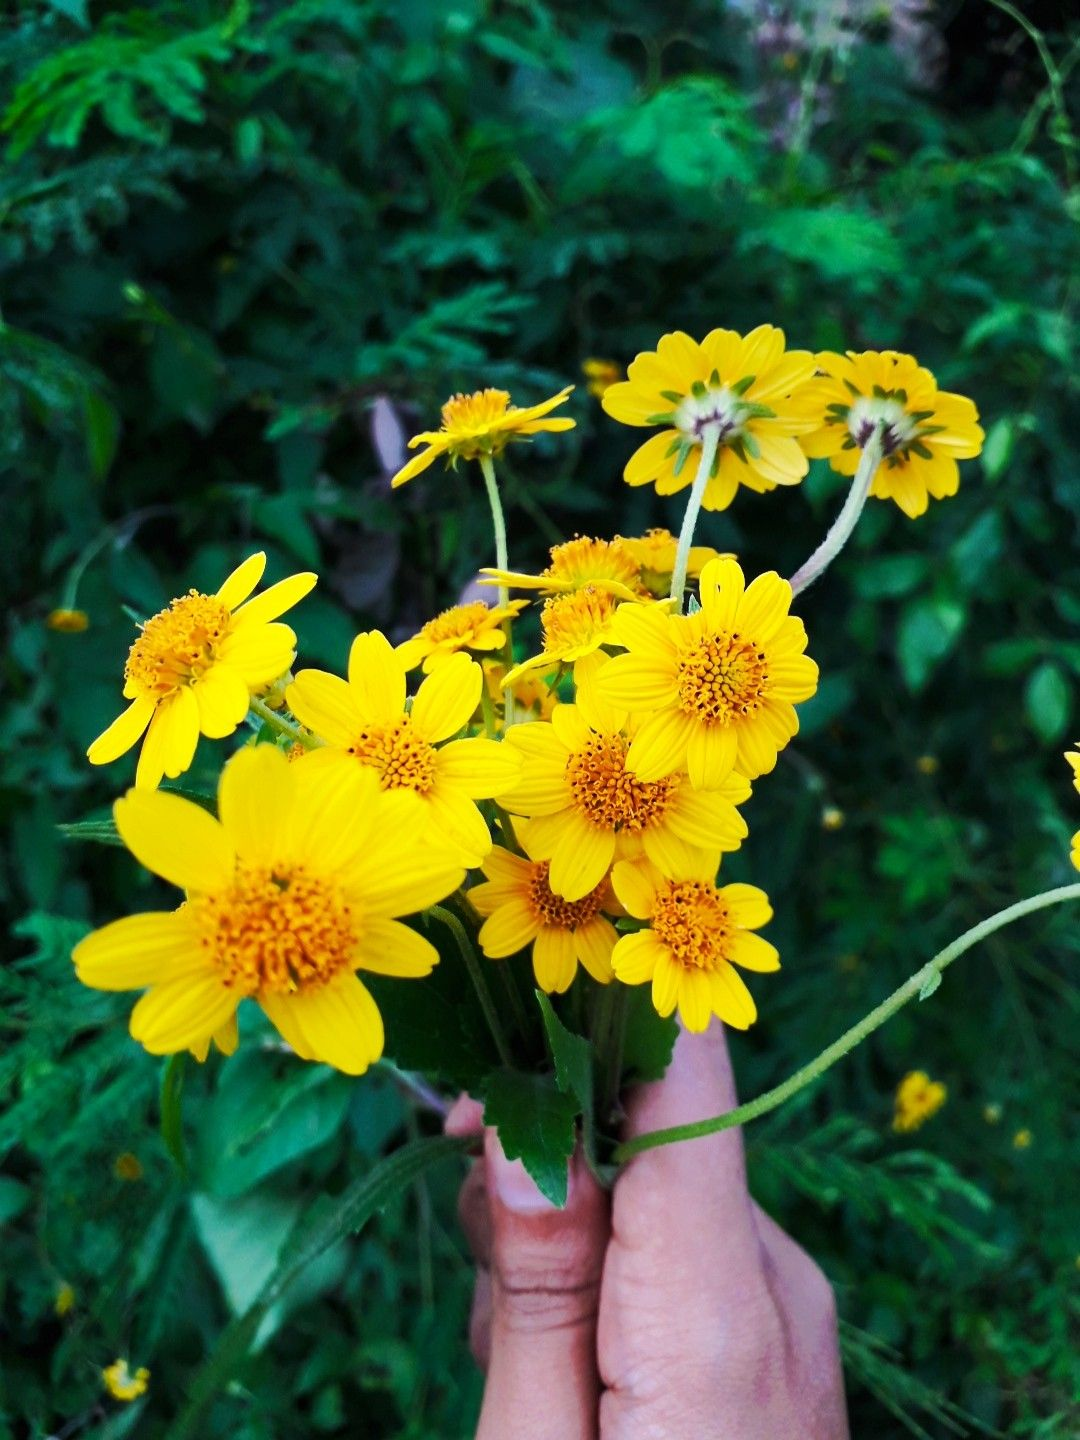 Wild Flower I Pick It On The Road But I See It Like Small Sunflower Small Sunflower Wild Flowers Flowers